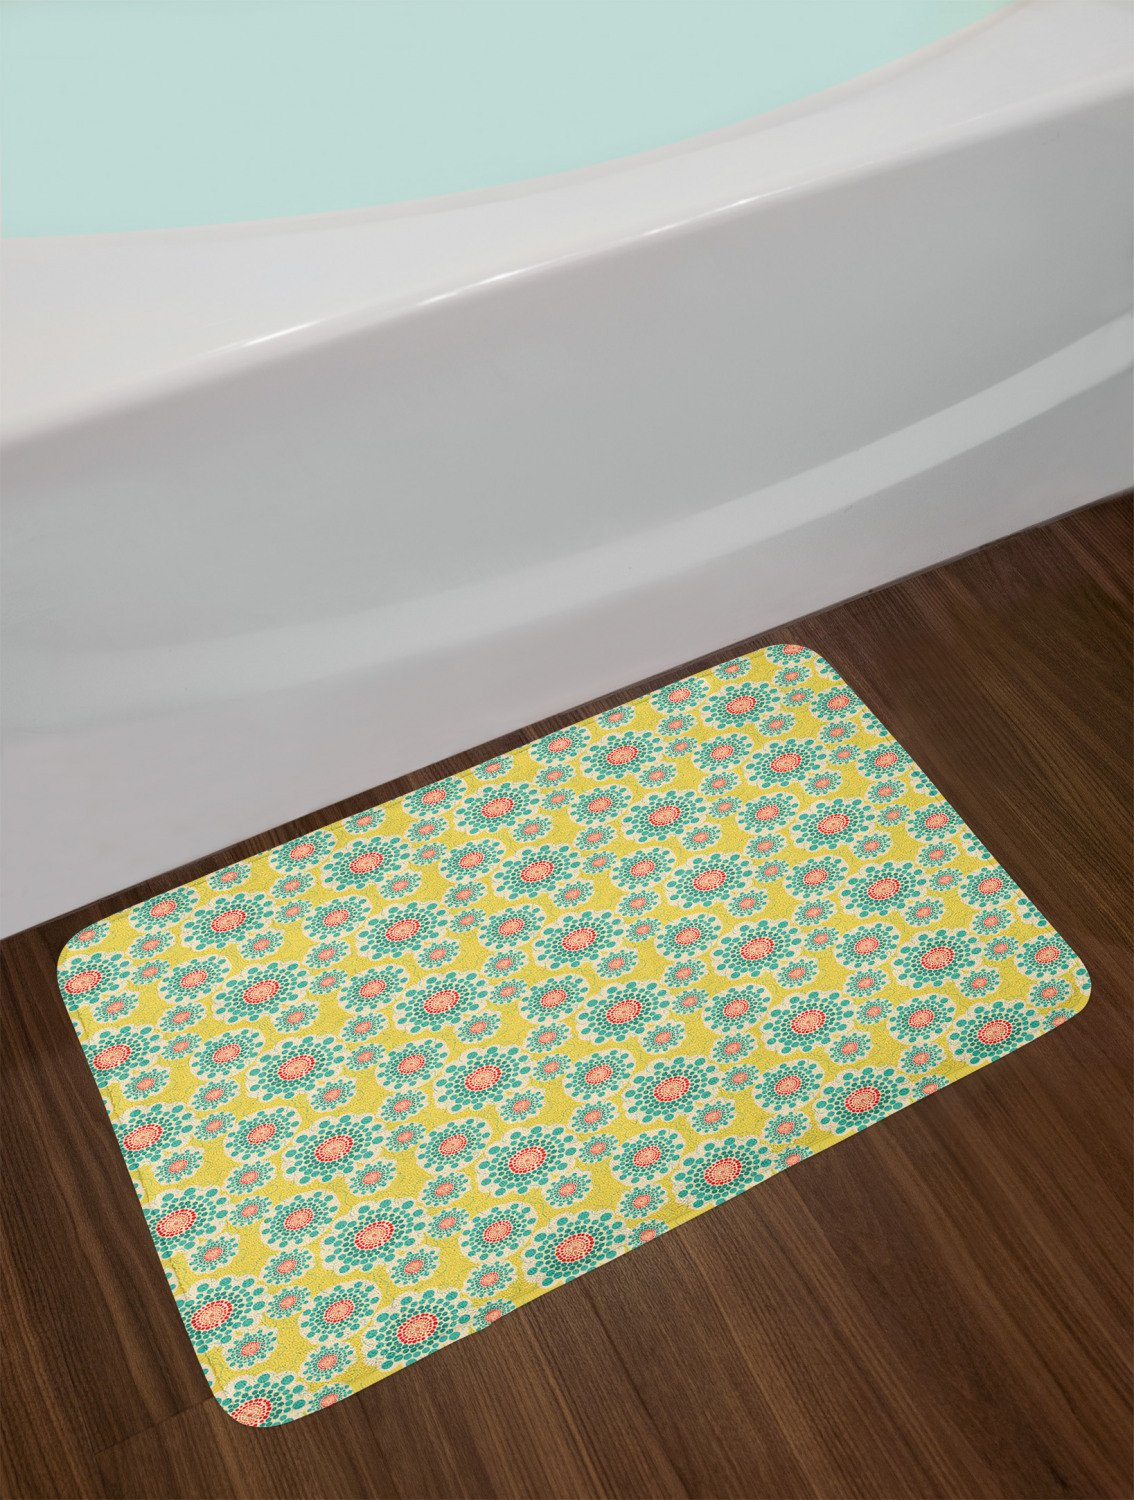 "Blue and Yellow Bathroom Decor Fresh Blue and Yellow Bath Mat Bathroom Decor Plush Non Slip Mat 29 5"" X 17 5"""